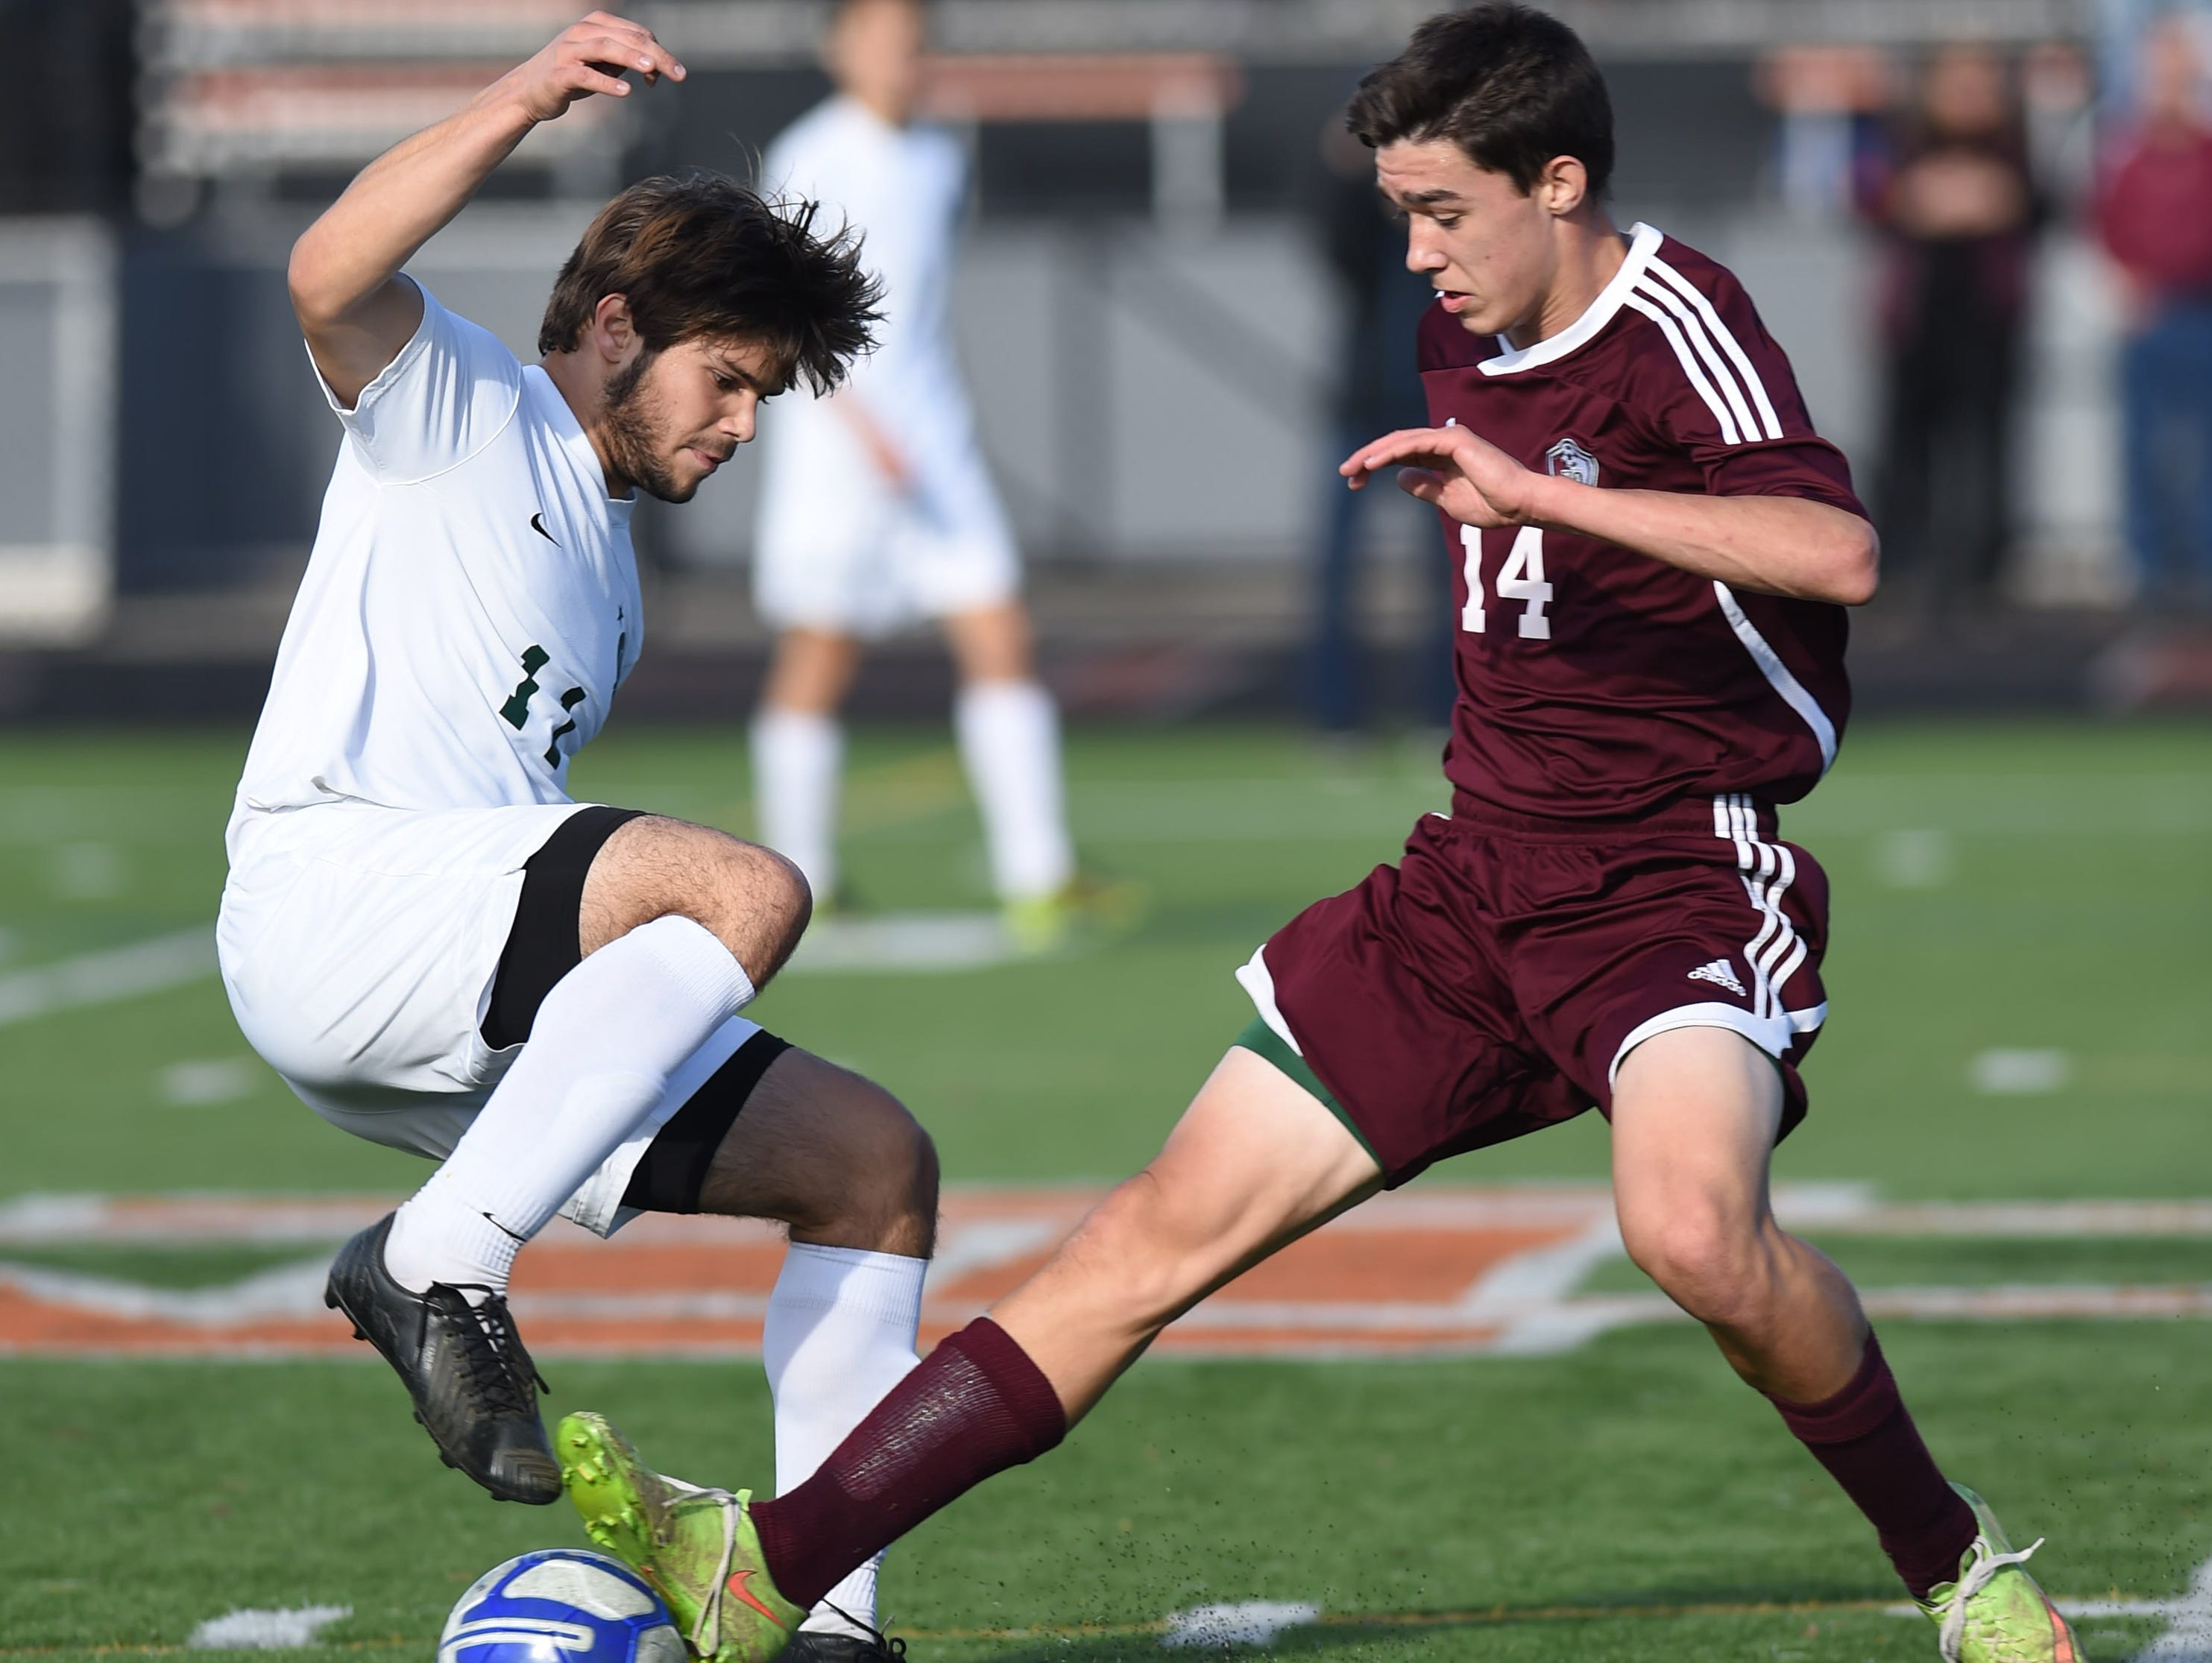 Spackenkill's Gaetano Citera keeps the ball away from O'Neill's Nolan Green during the Section 9 Class B final held in Marlboro on Saturday.